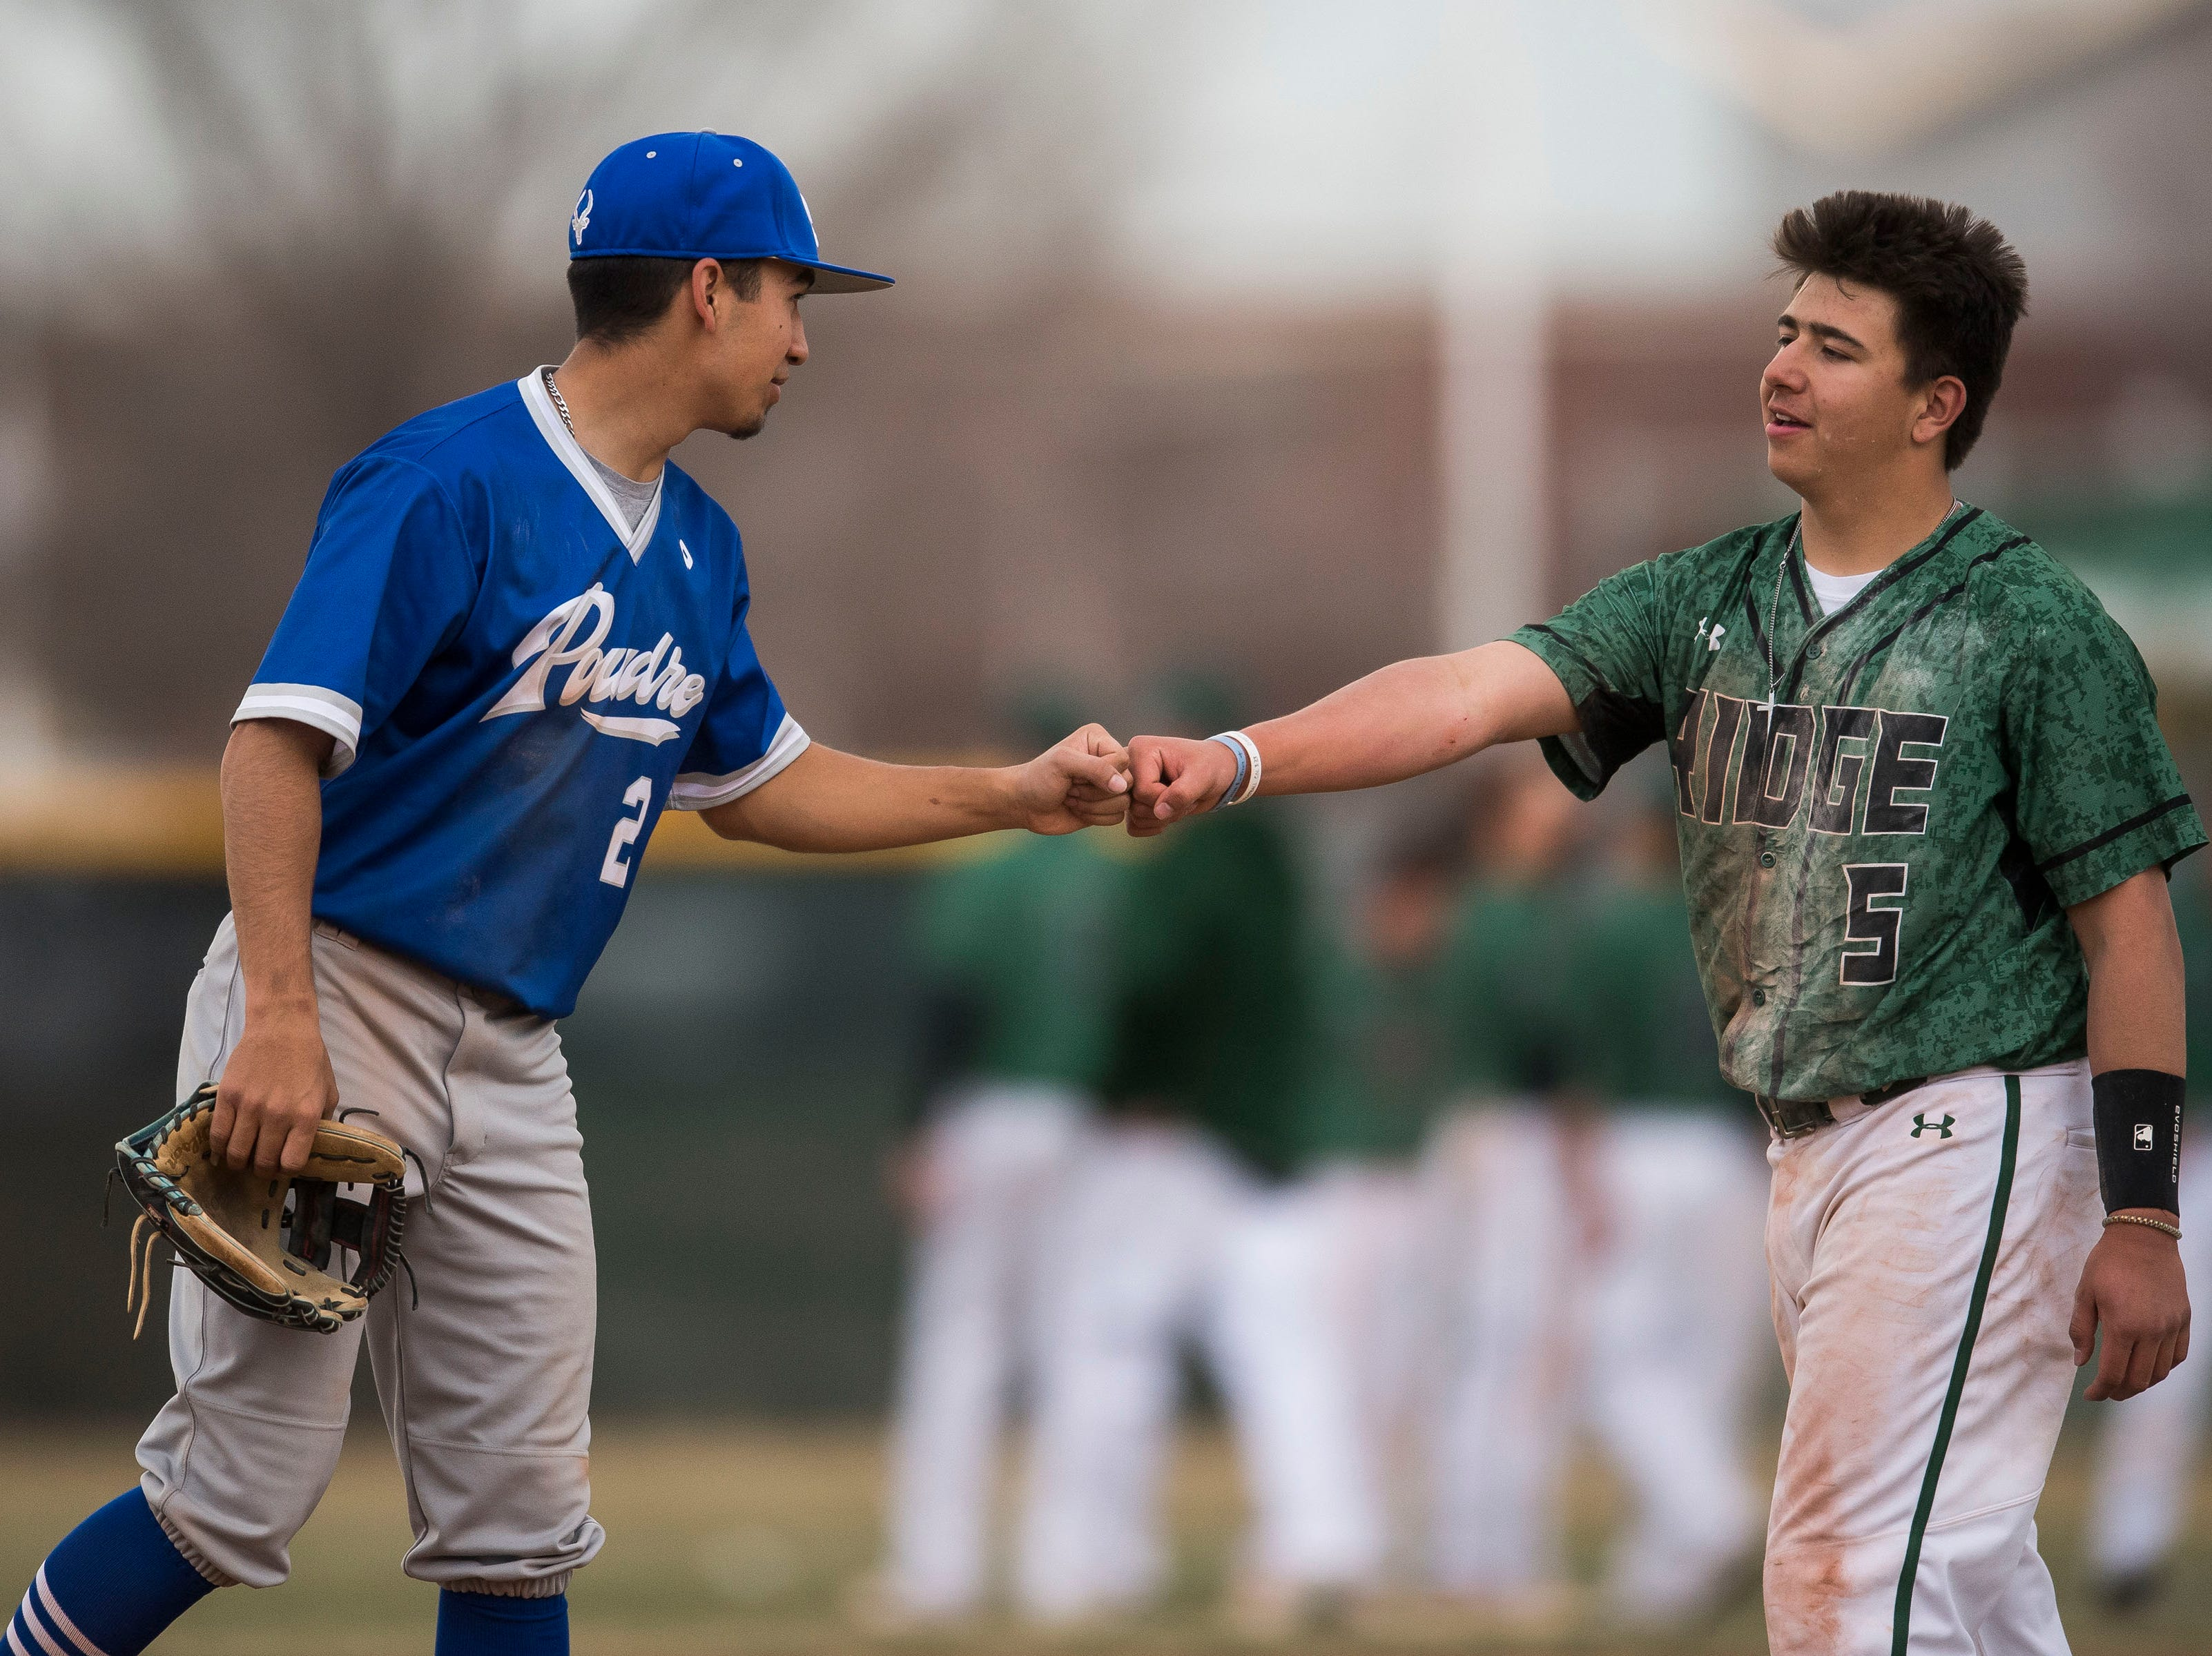 Poudre High School junior Sergio Tarango (2) bumps fists with Fossil Ridge High School's Nathan Novak (5) after a win by Poudre on Wednesday, April 3, 2019, at Fossil Ridge High School in Fort Collins, Colo.